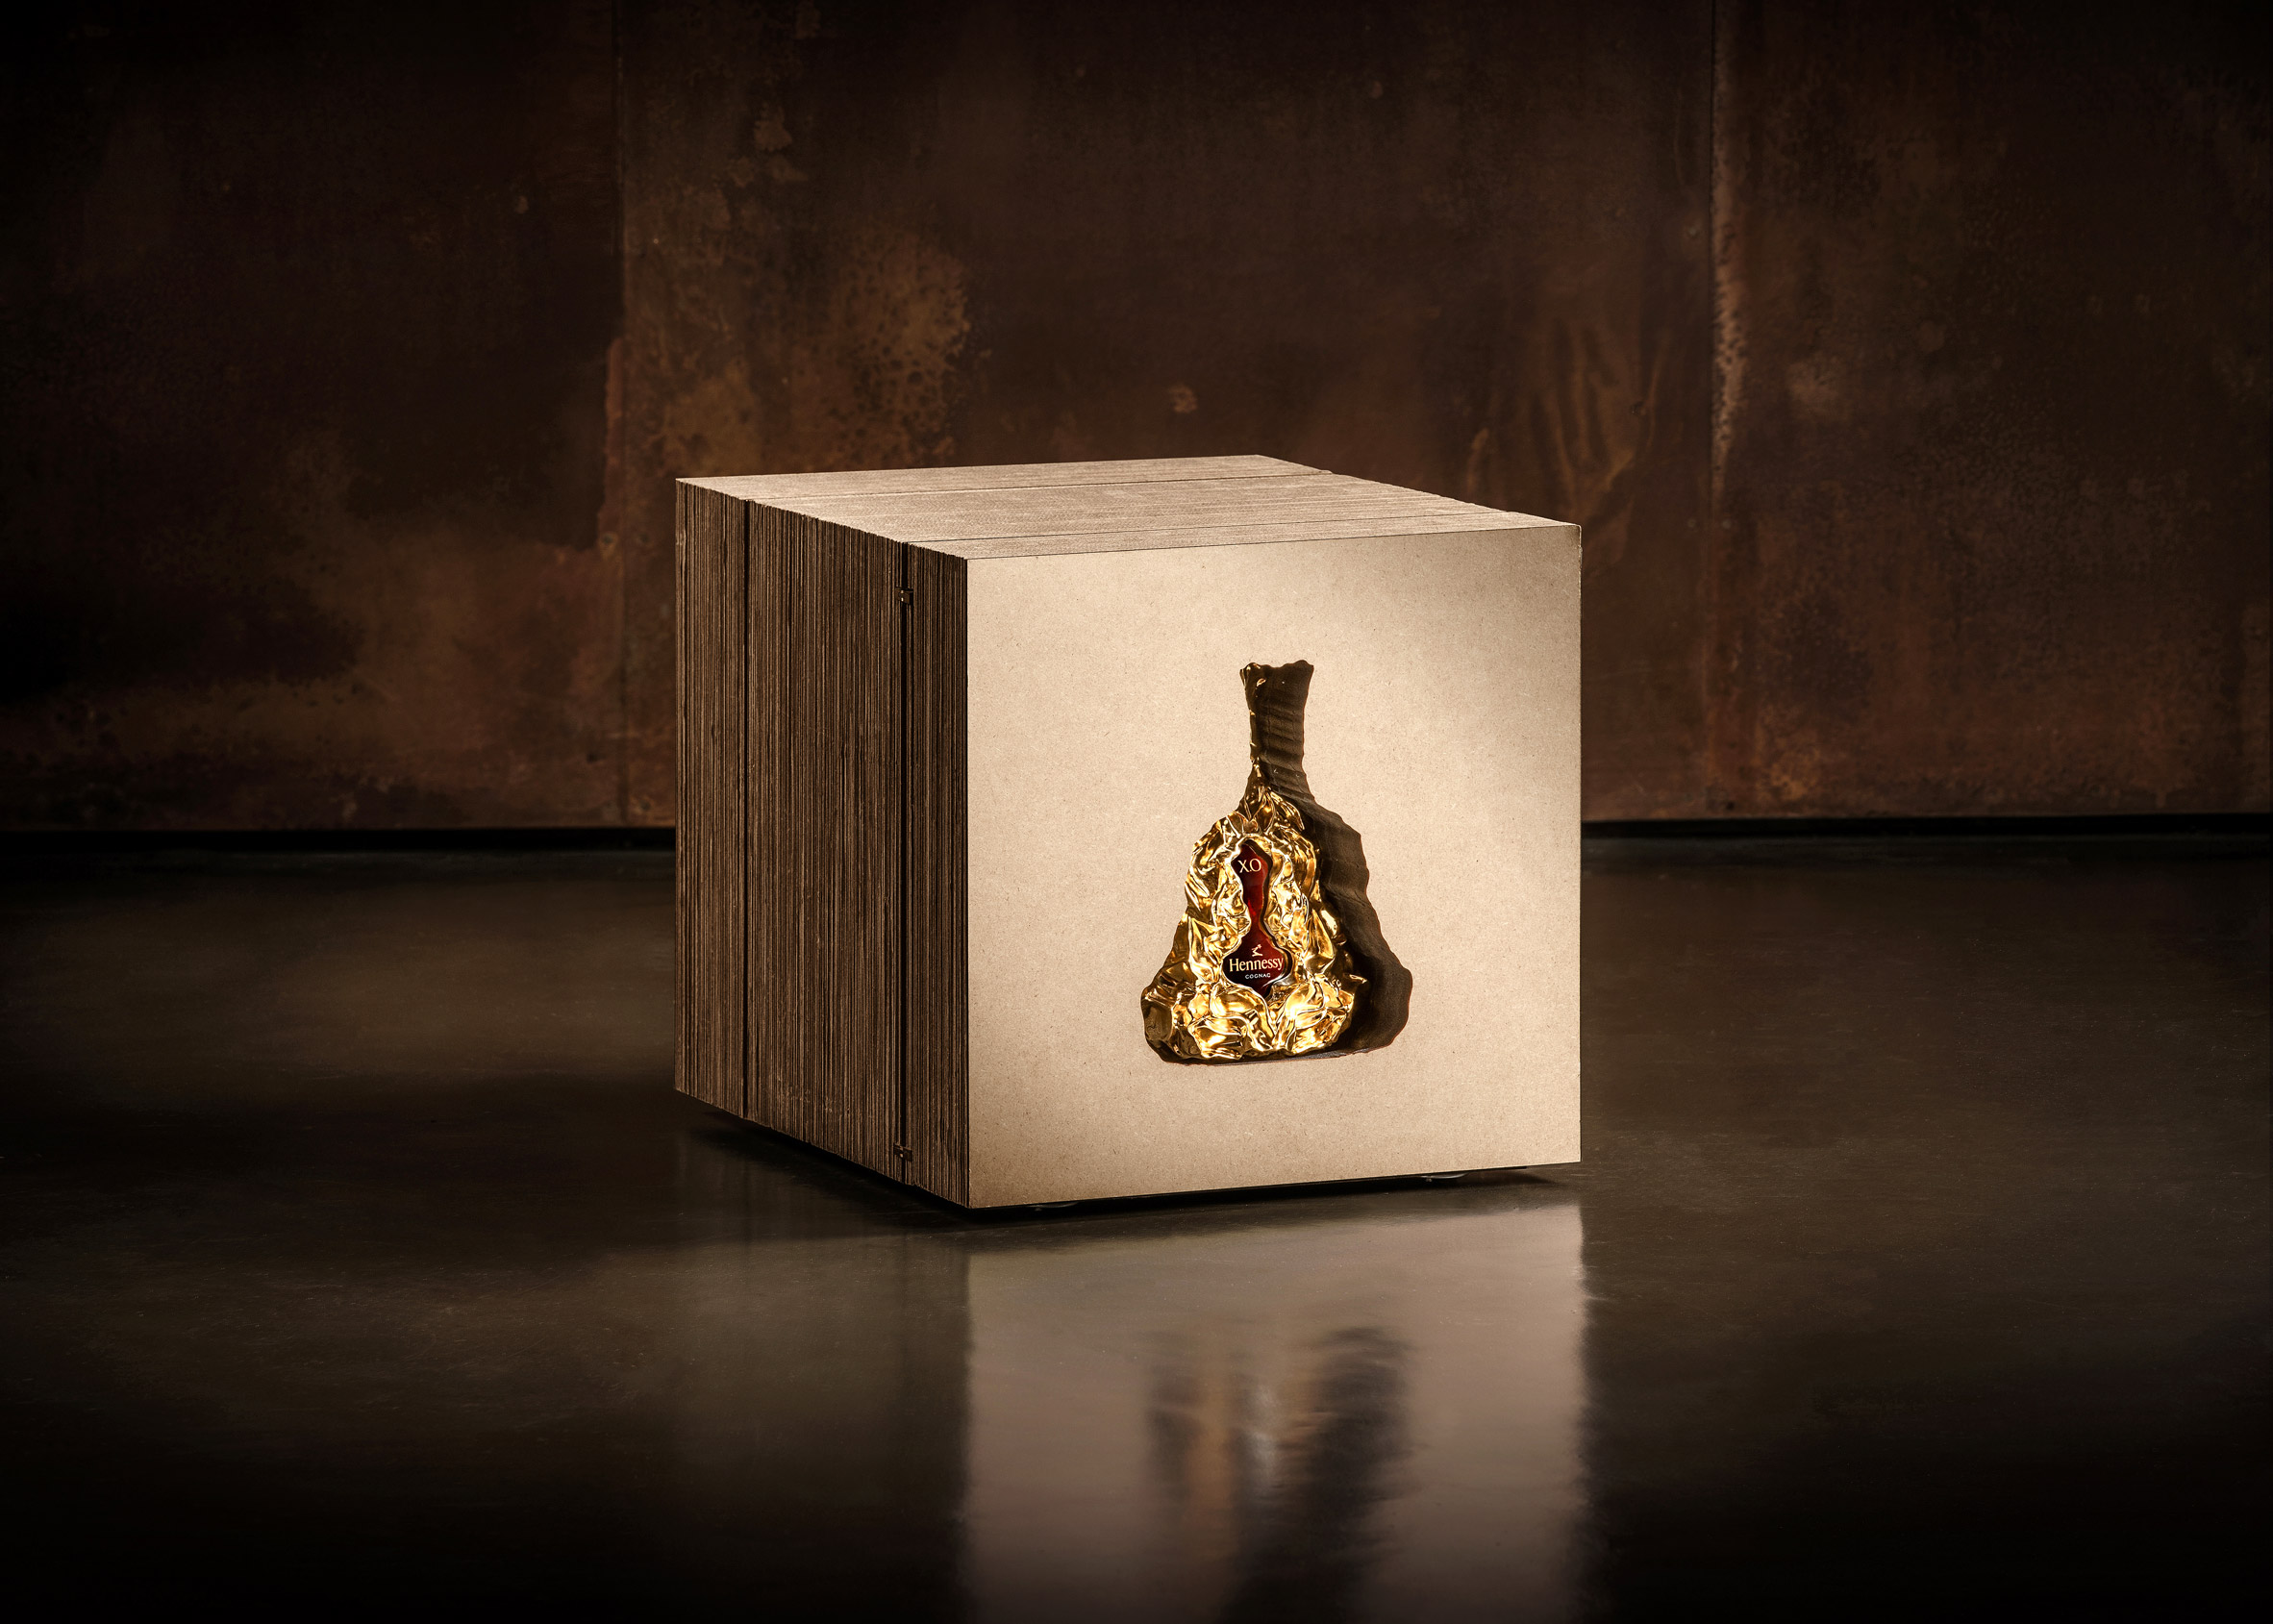 hennessy-xo-150-anniversary-frank-gehry_dezeen_2364_col_16.jpg